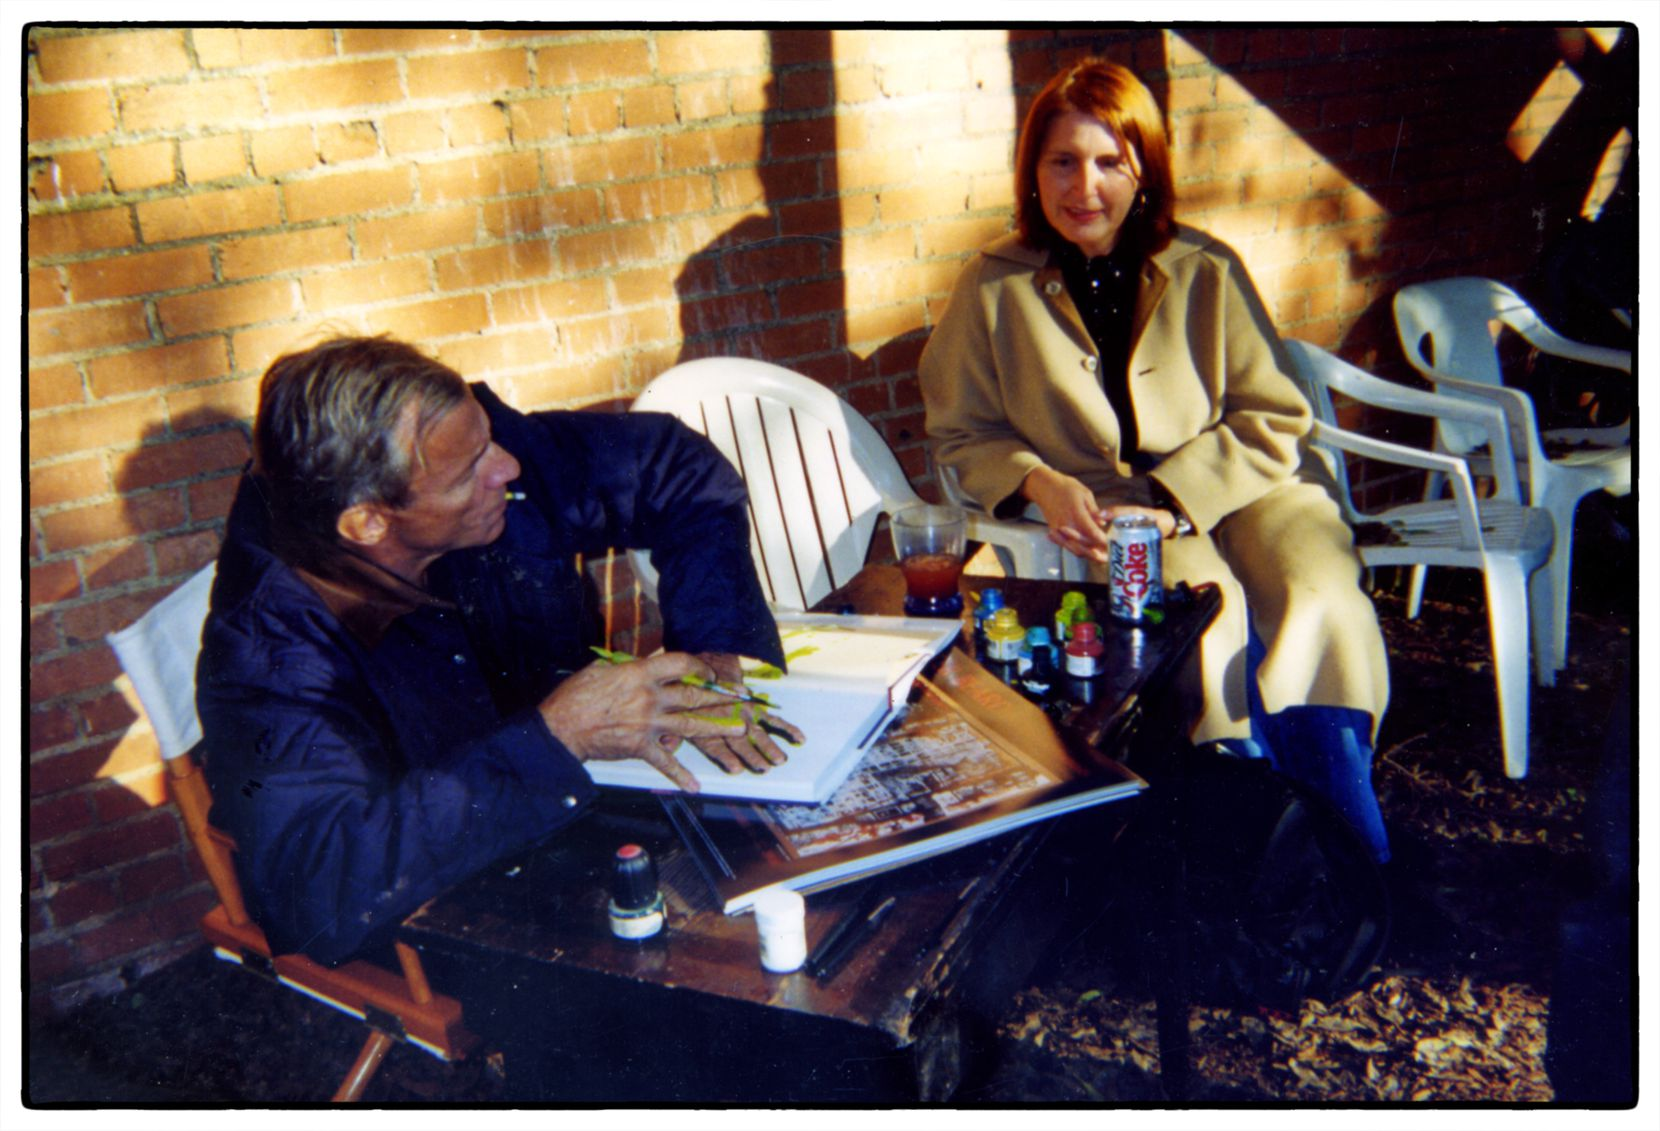 Karen Blessen talks with Peter Beard during the exhibit of his works at the Boyd Gallery in Dallas in 2000.